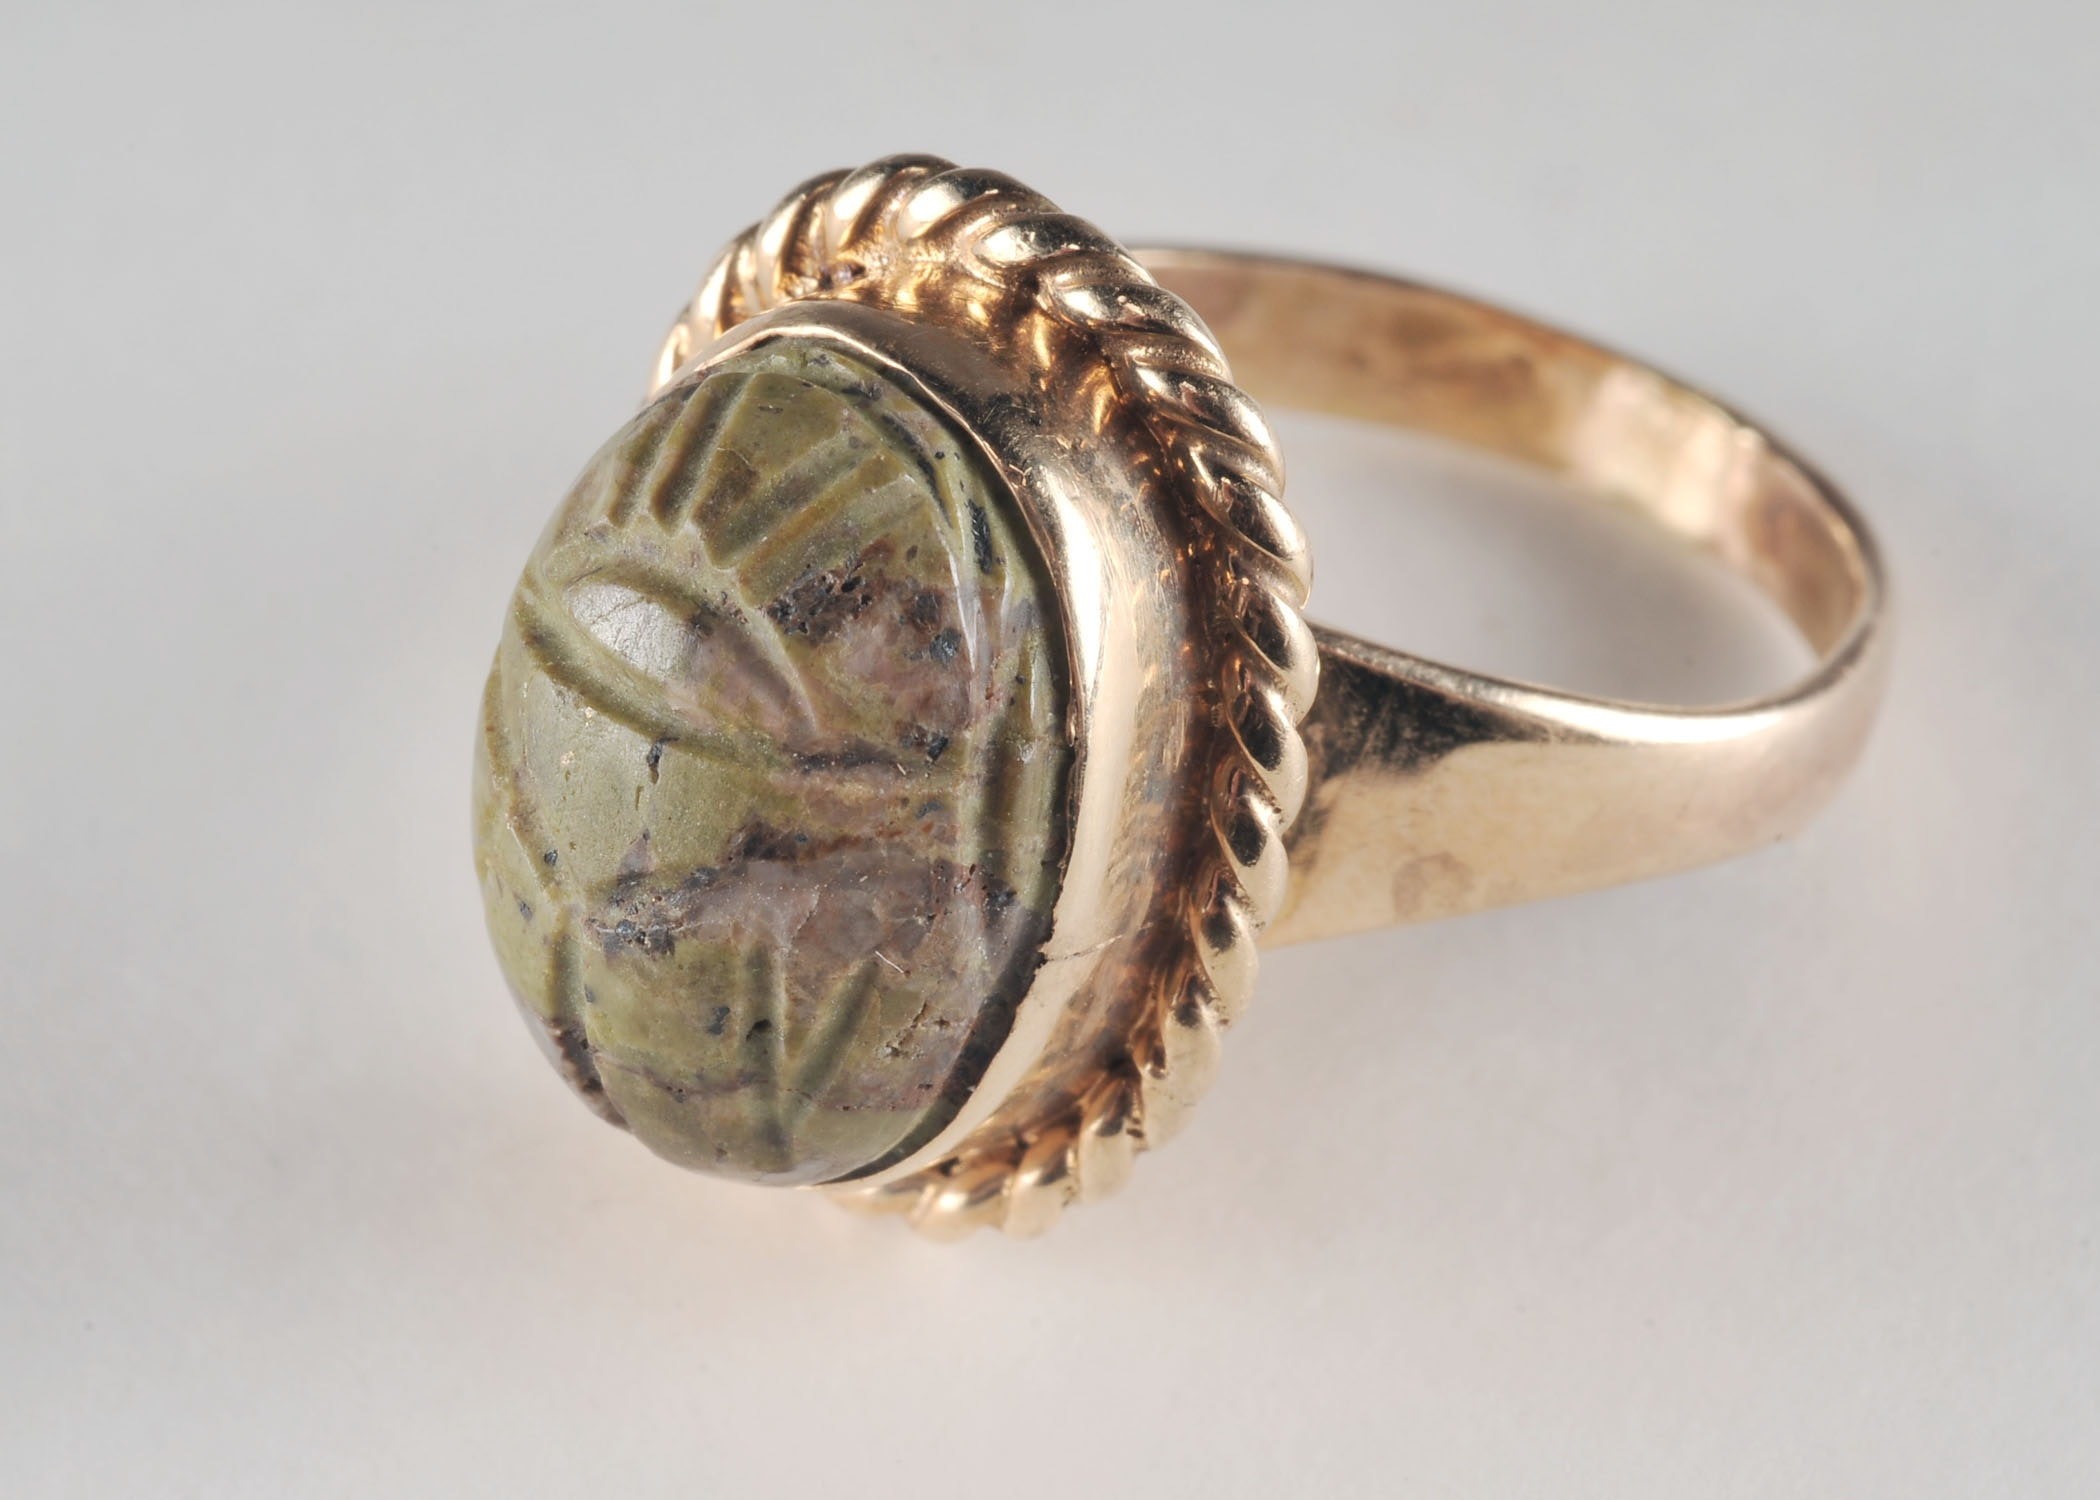 Lady's 14 K yellow gold carved scarab ring